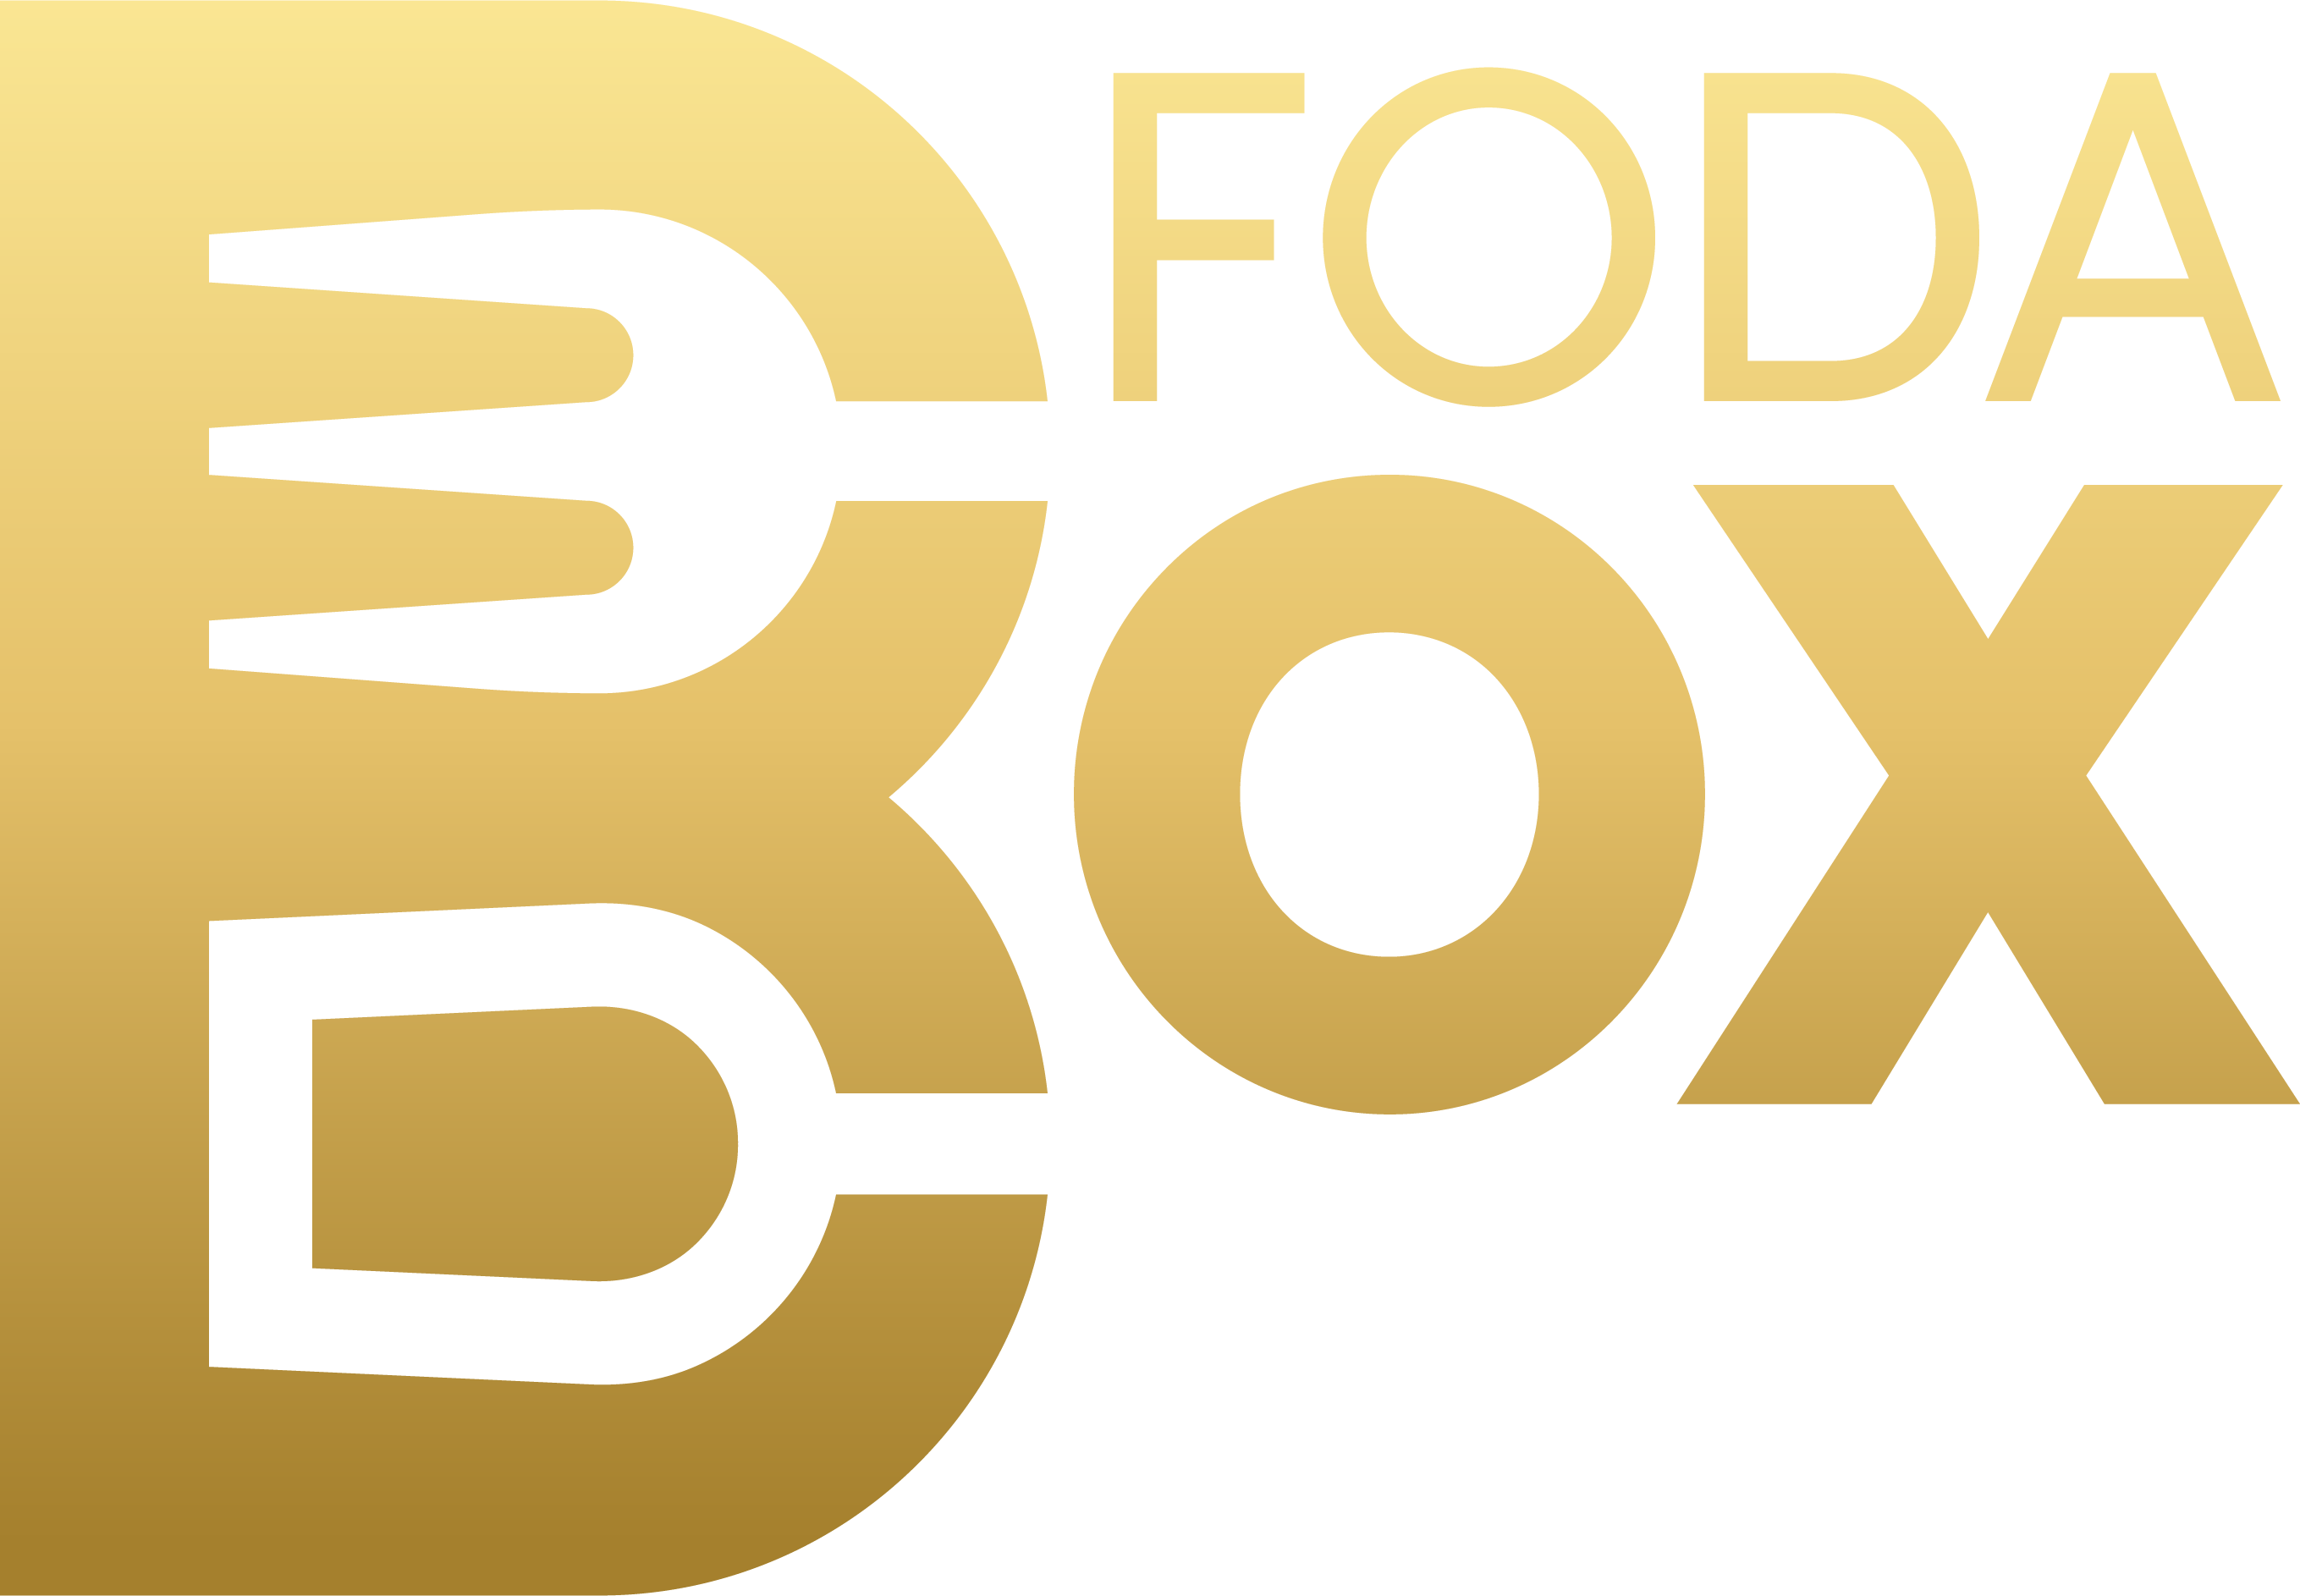 FodaBox scales business through Google Shopping with Bidnamic